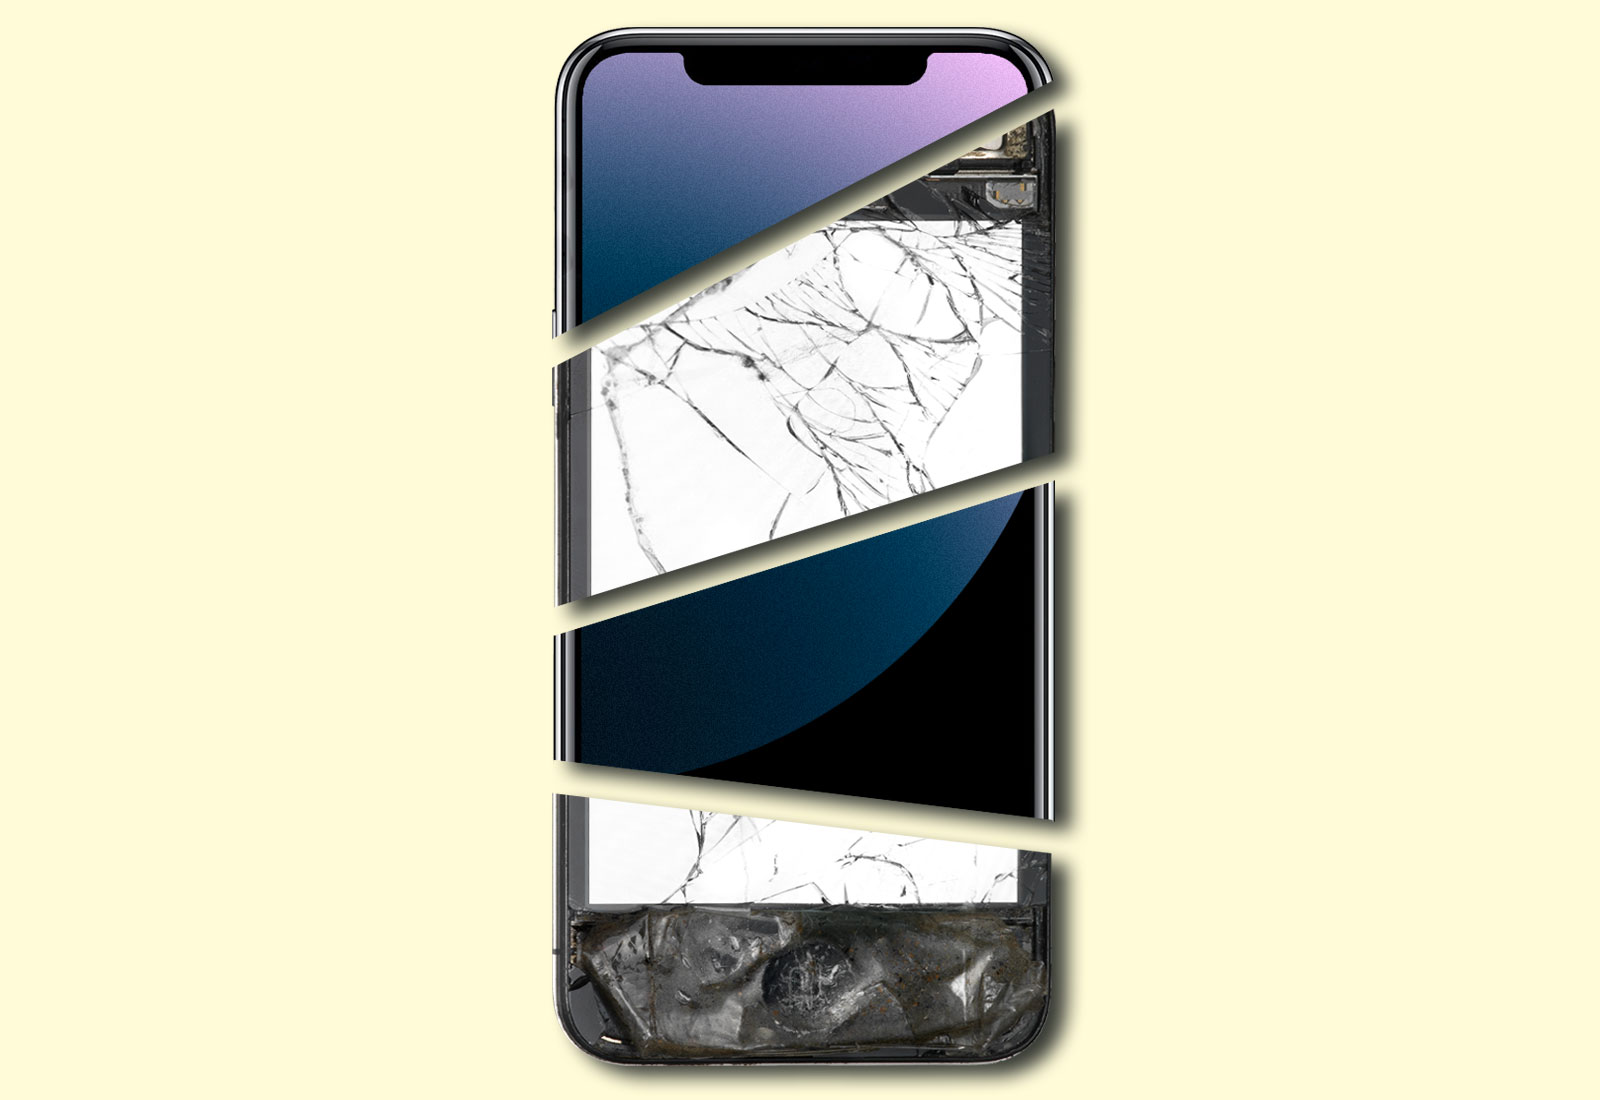 Collage: Pieces of a broken smartphone put together with pieces of a new smartphone